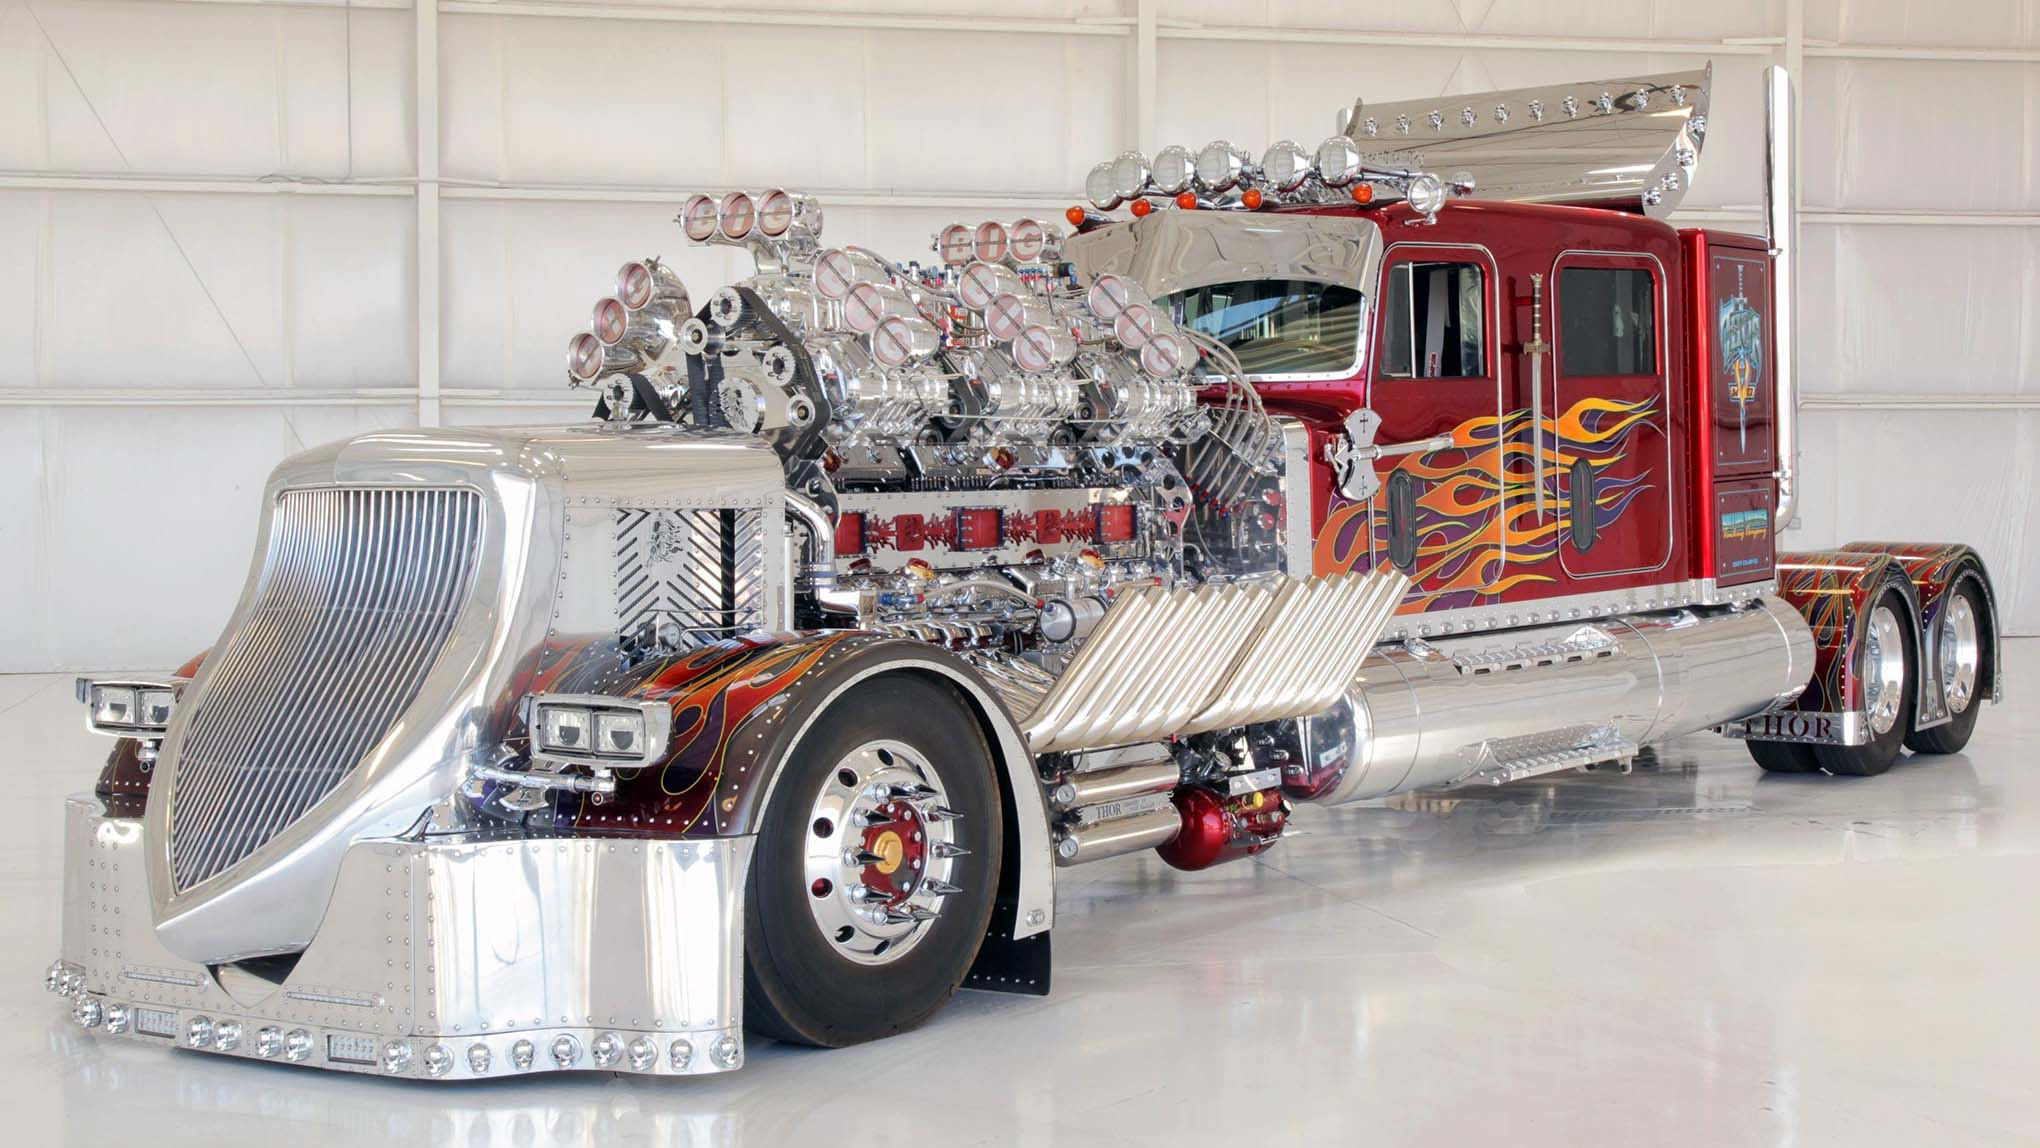 THOR 24 Is the 3,424-HP, 24-Cylinder, 12-Blower Semi of Doom | Automobile